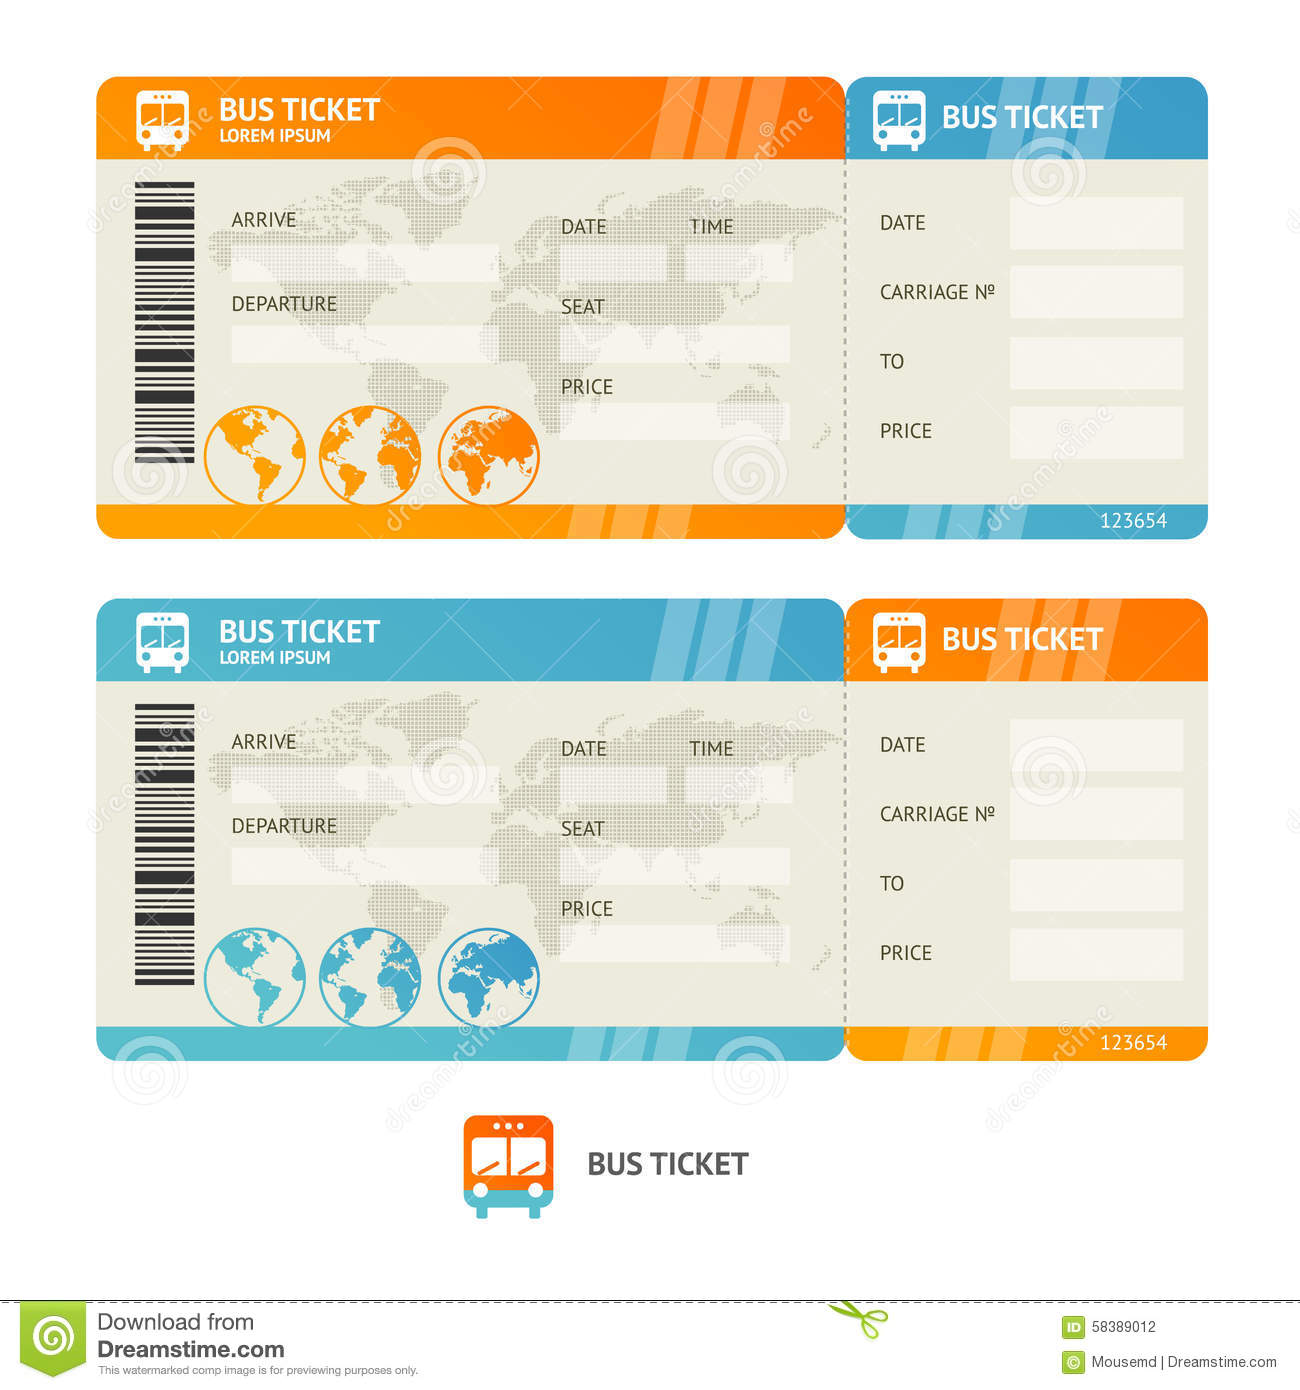 Make my trip coupons for bus booking